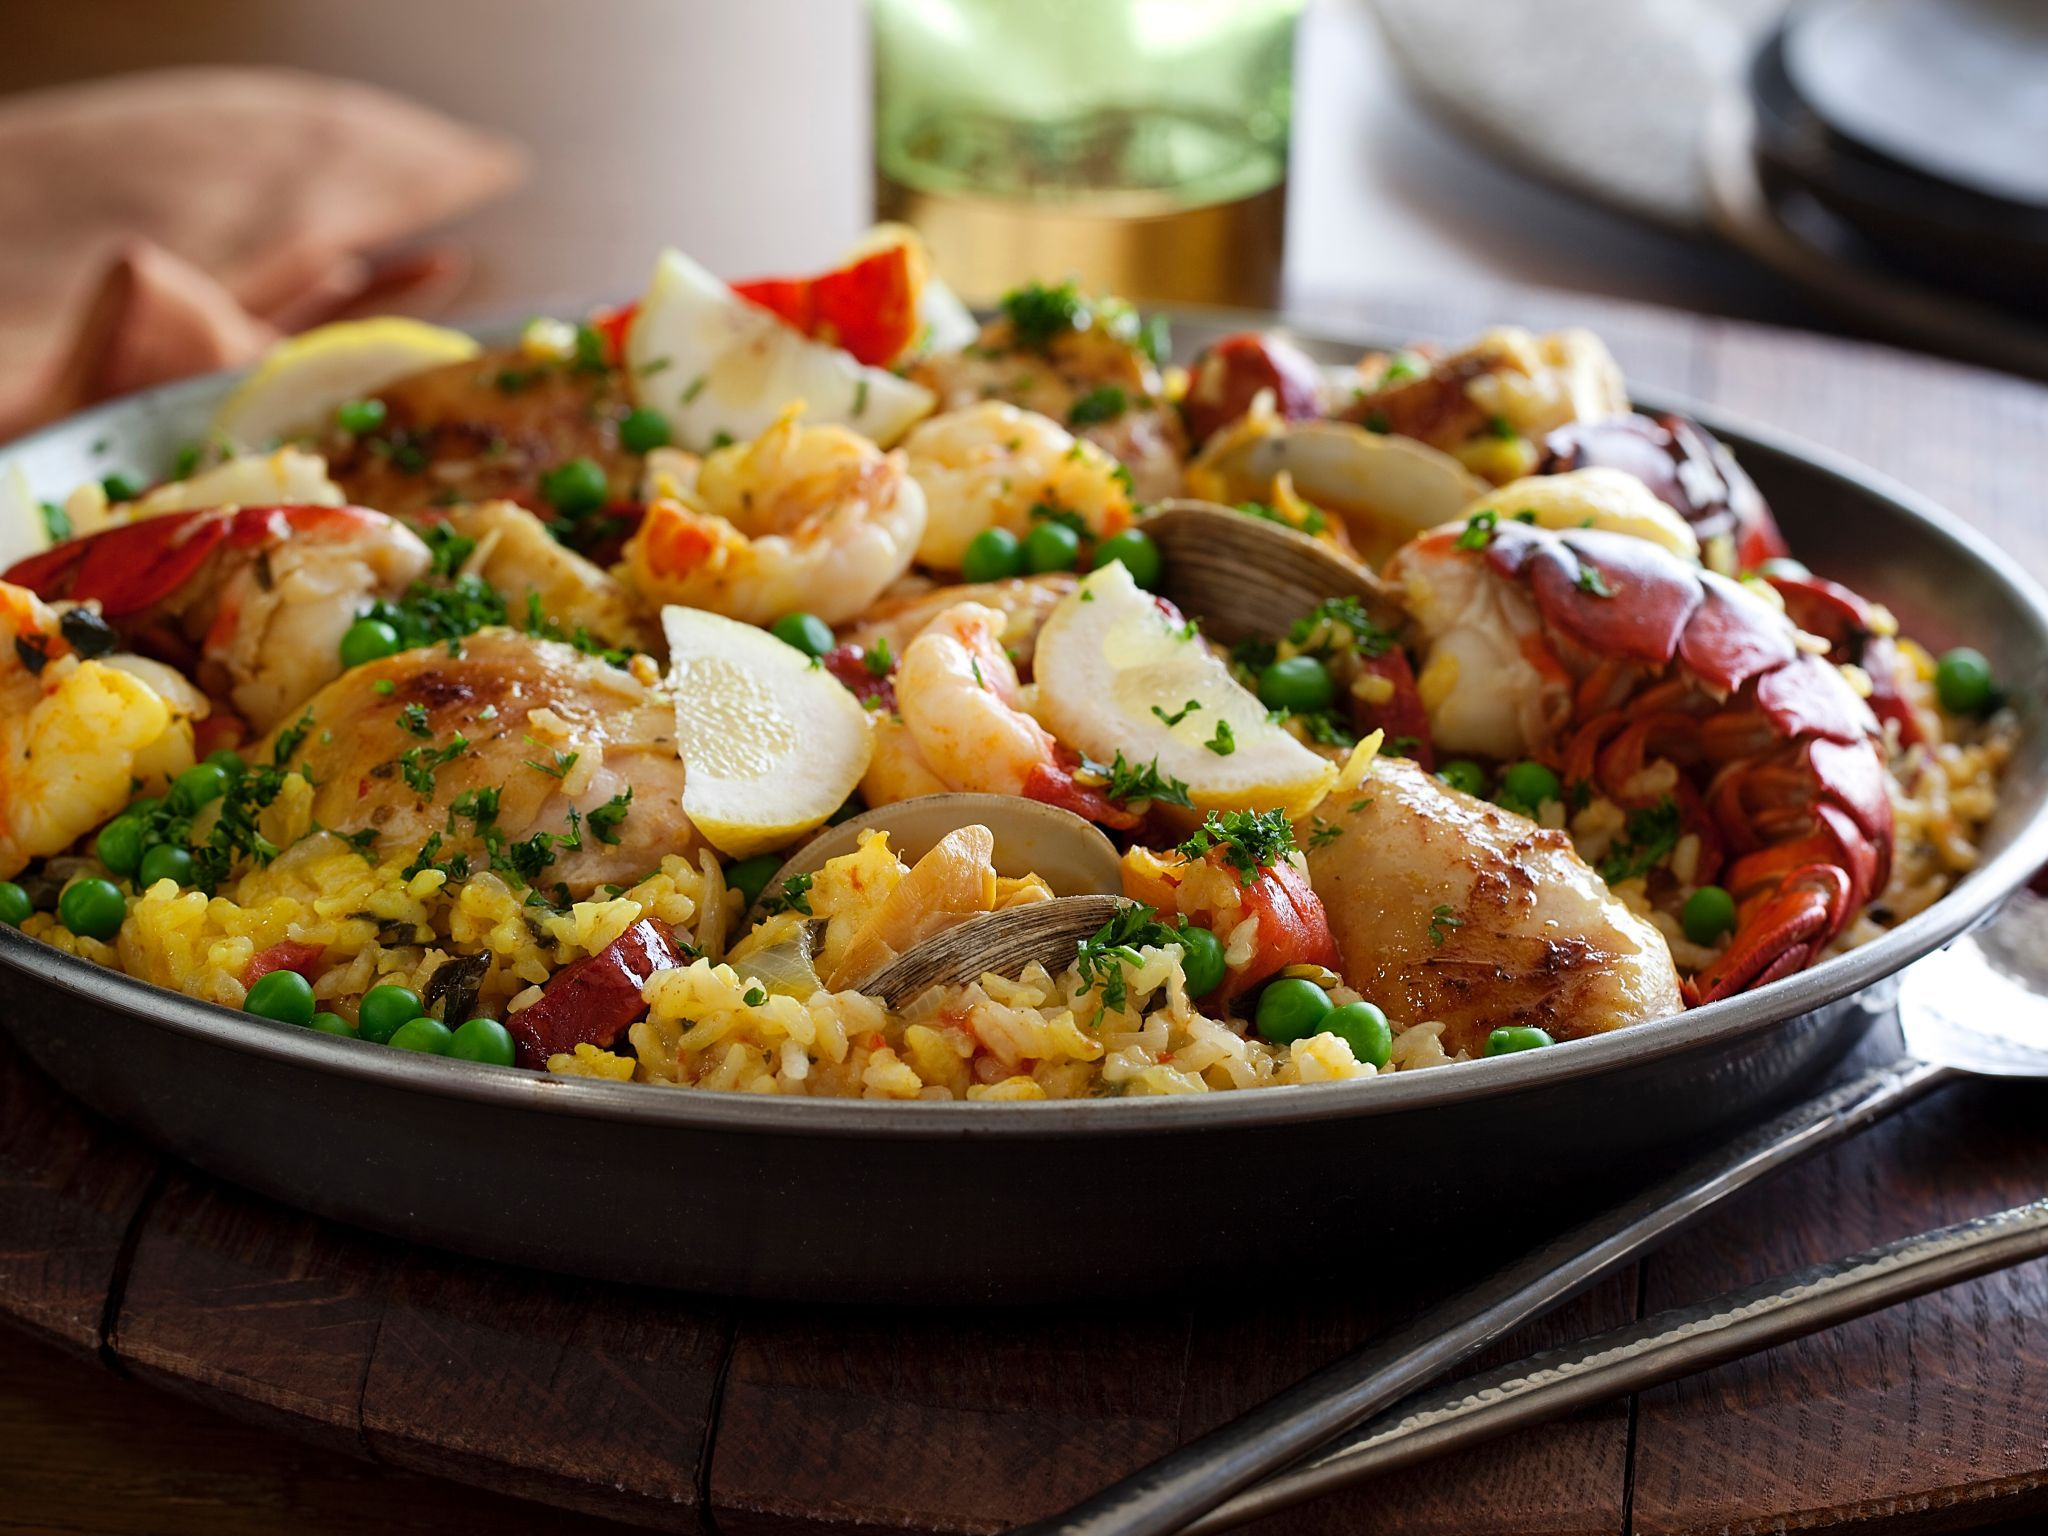 The ultimate paella receta fideua analia y canciones infantiles fiestas the ultimate paella recipe from tyler florence via food network forumfinder Gallery